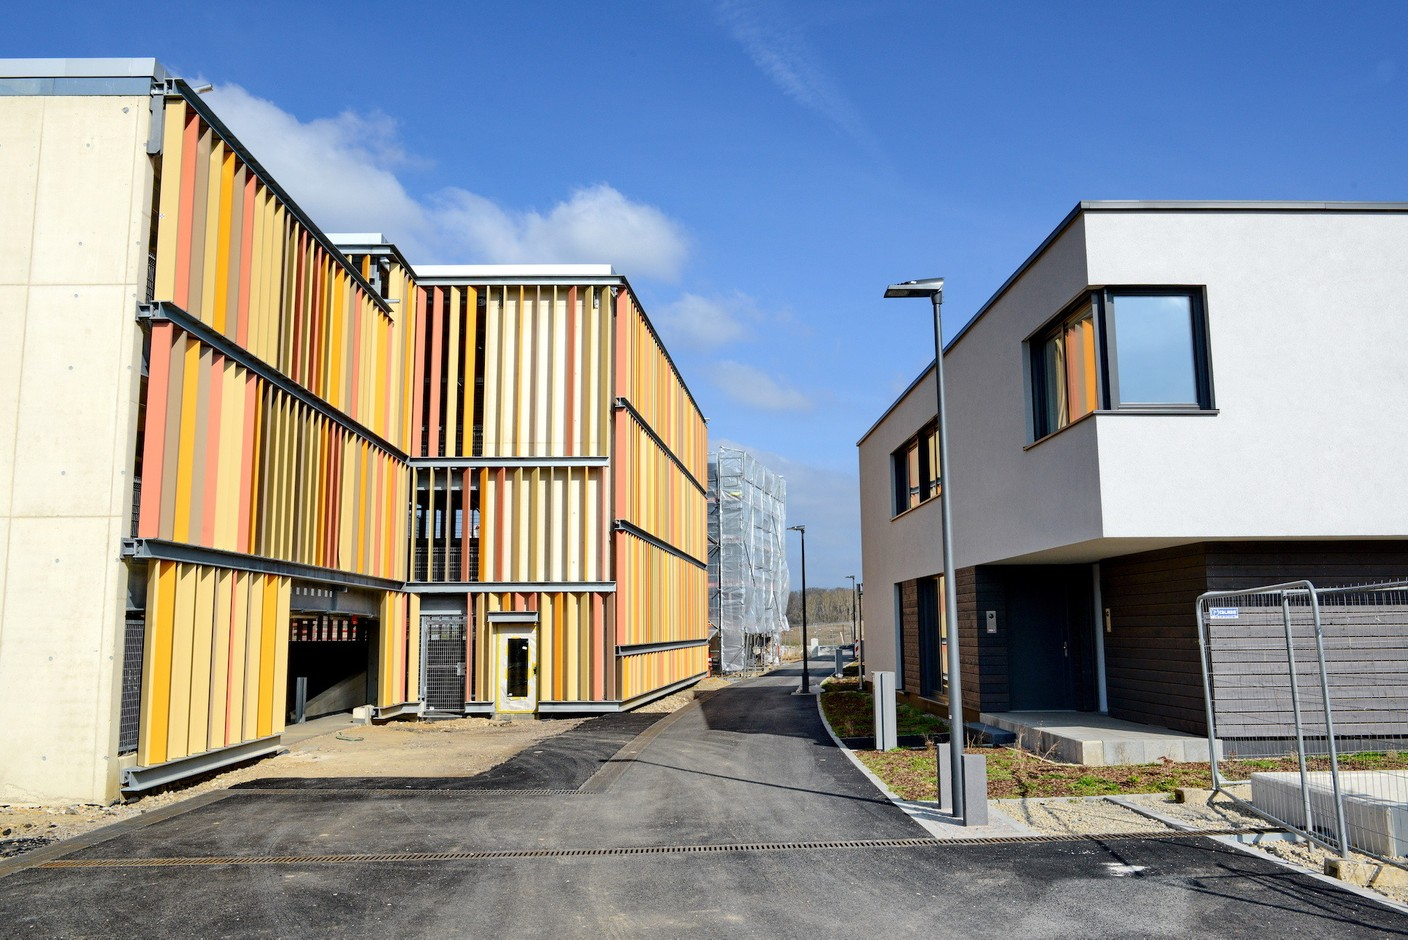 Opposite the show houses, one of the parkhouses has already been built. (Photo: Media library of the municipality of Kehlen - Raymond Faber)